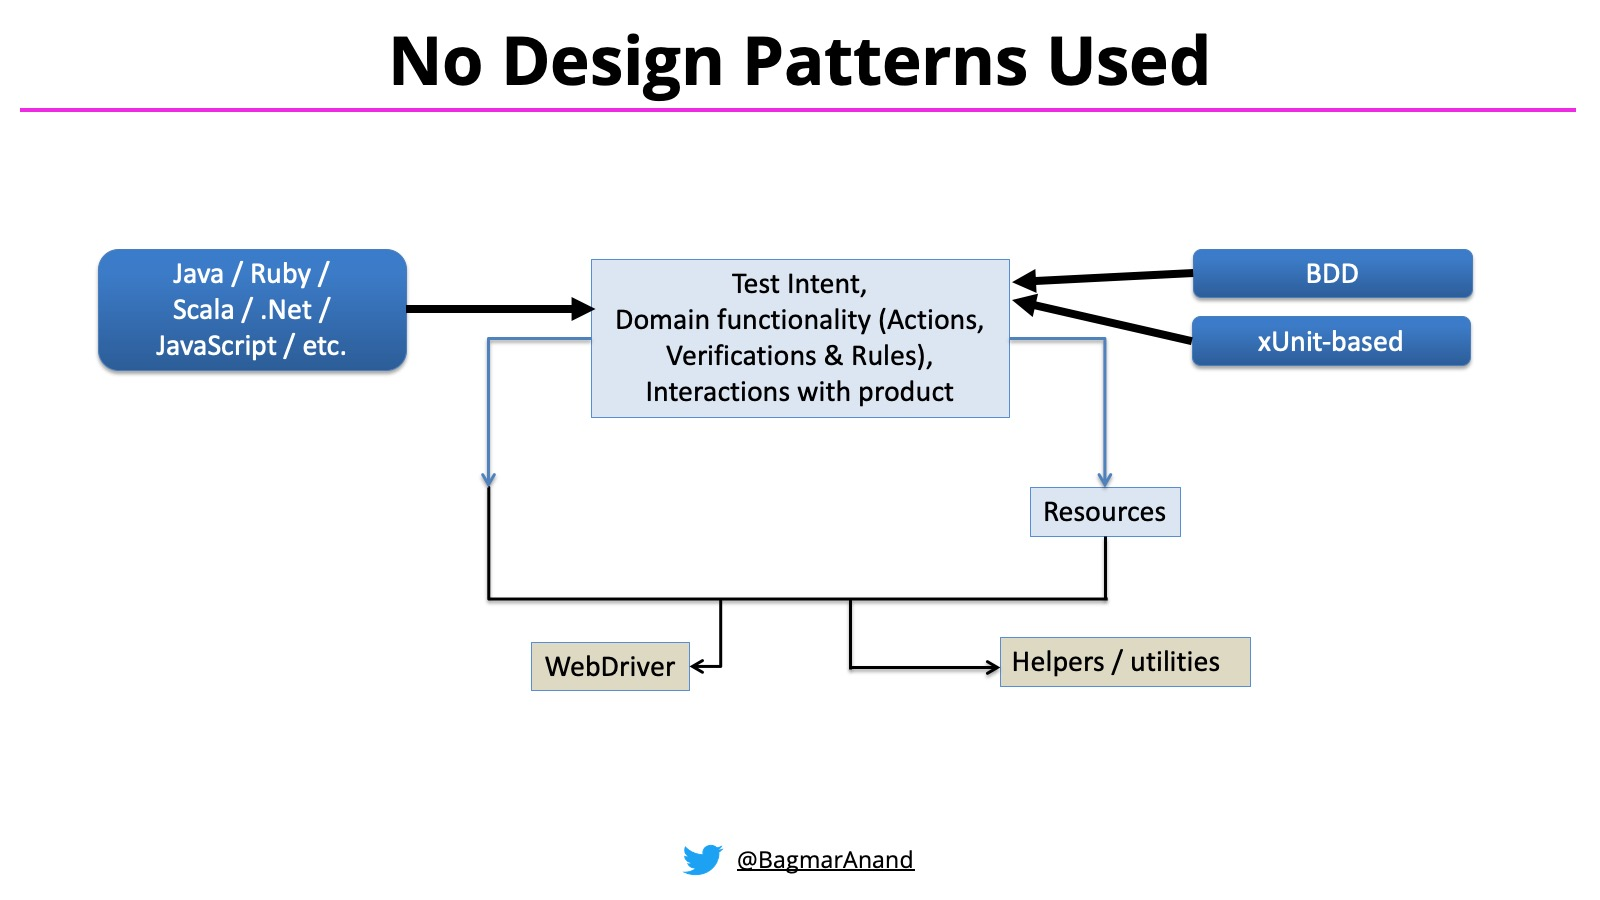 No Design Patterns Used